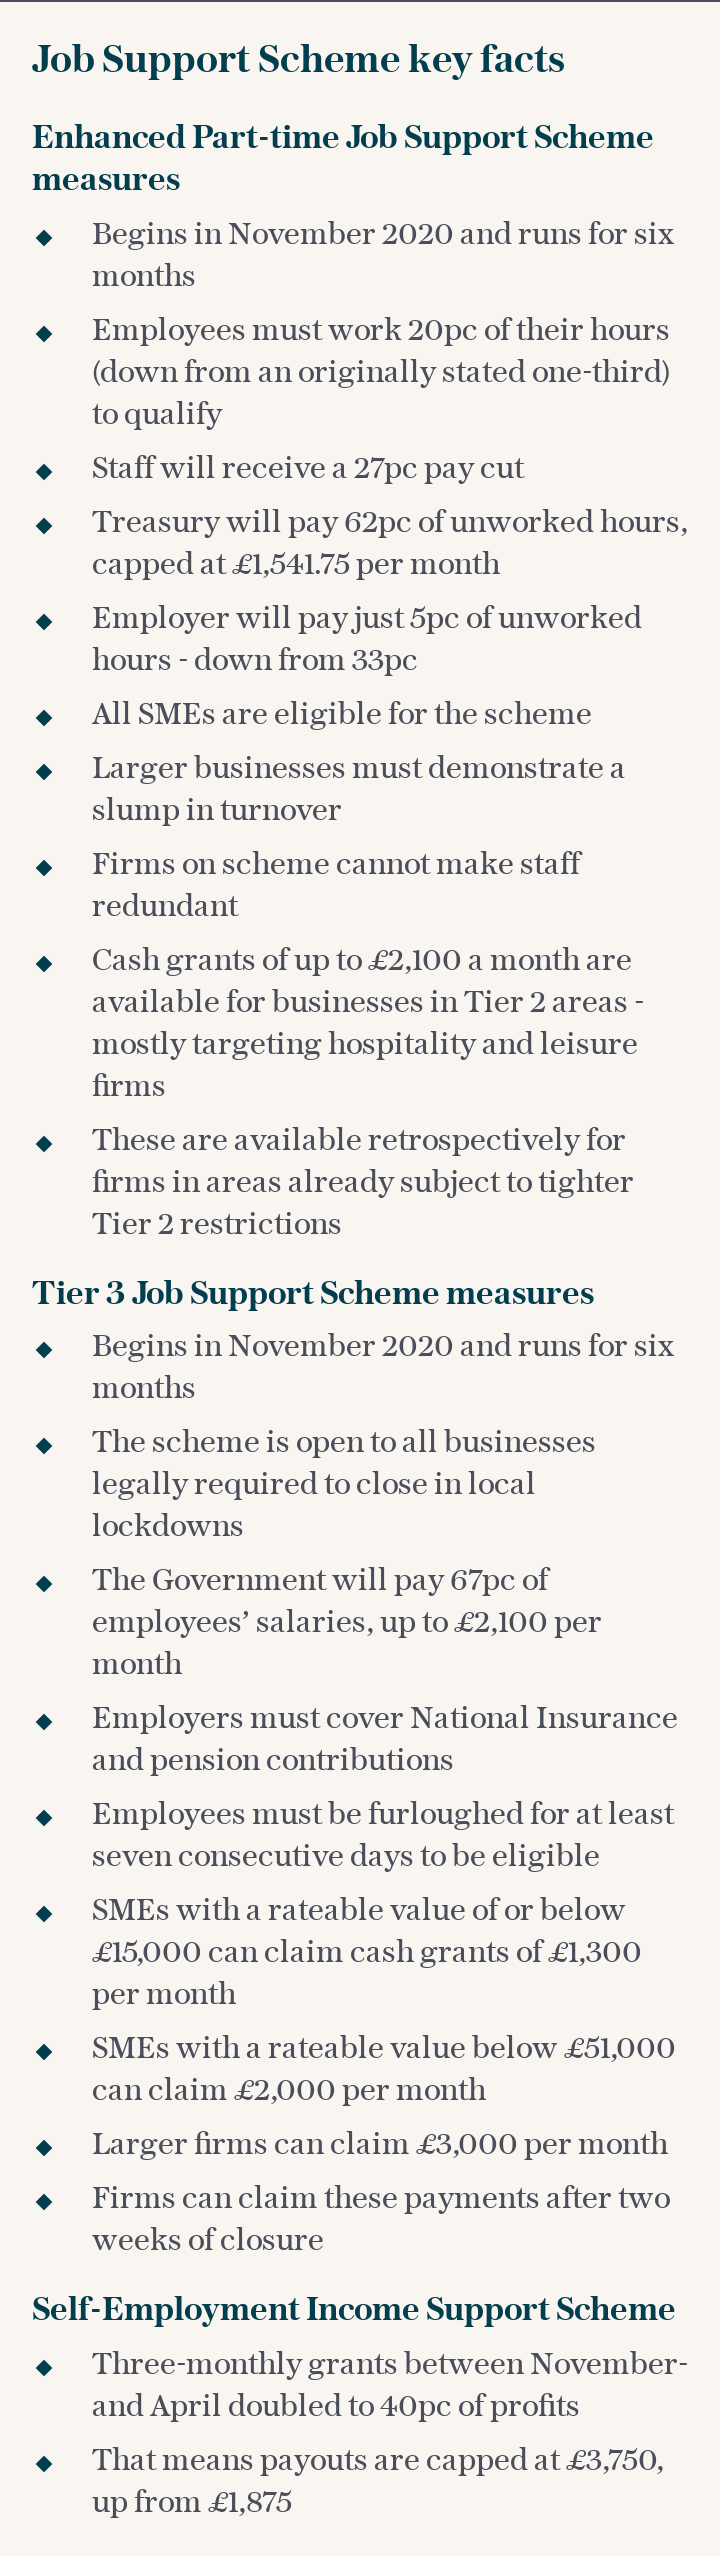 Job Support Scheme key facts